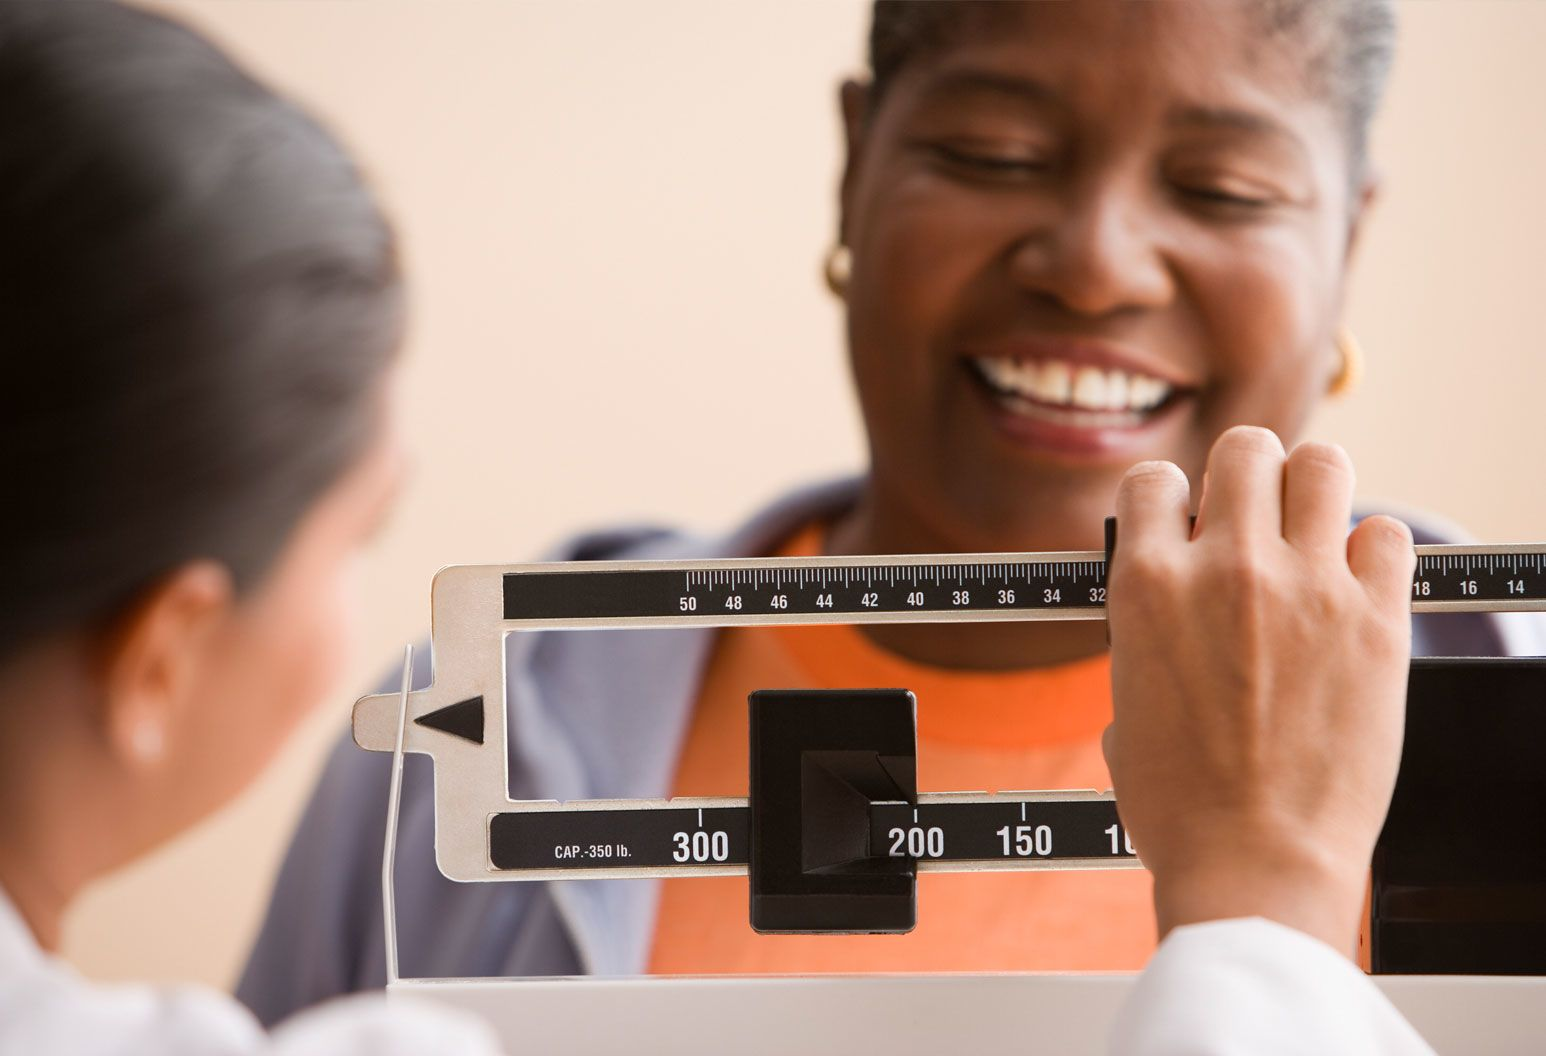 Female patient is smiling as she stands on a scale and her weight is measured